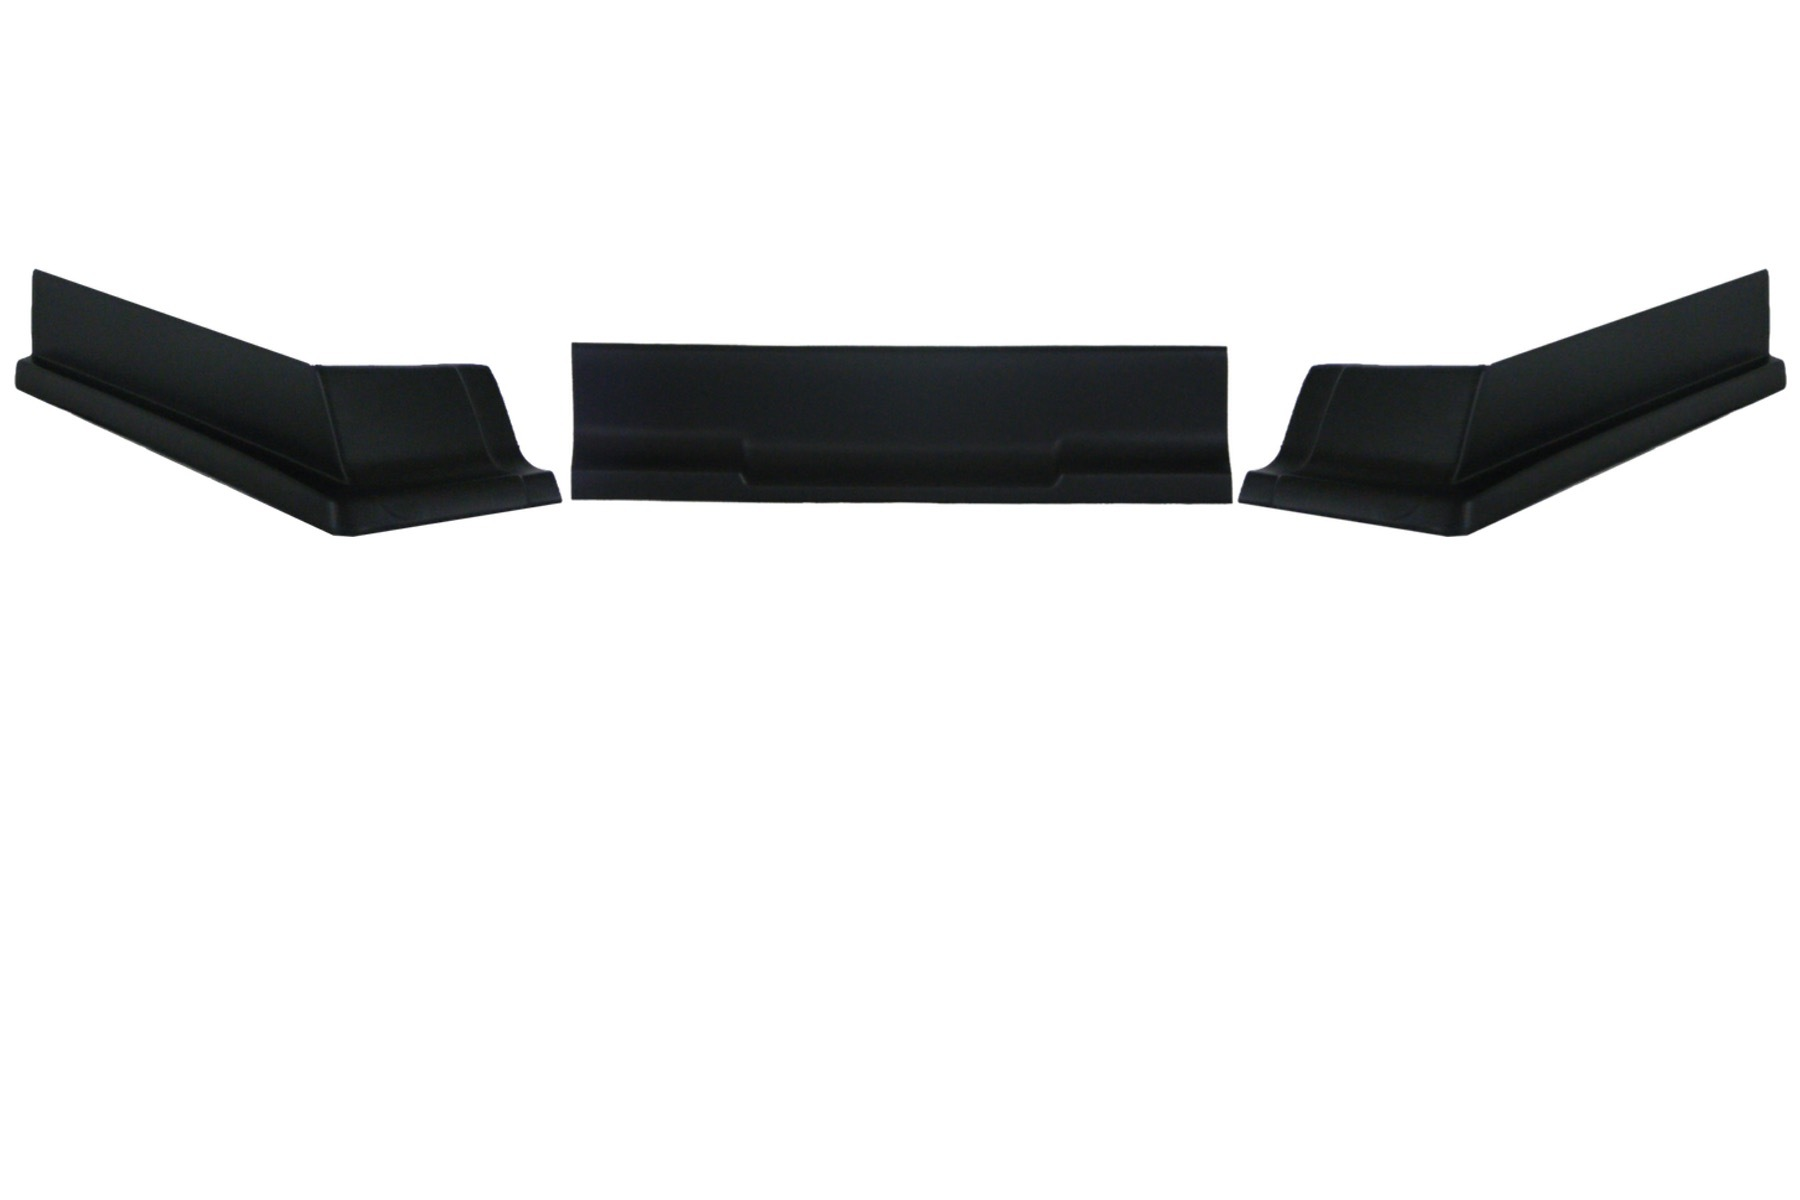 Dominator Racing Products 409-BK Air Valance, 3 Piece, Molded Plastic, Black, Dirt Modified, Each